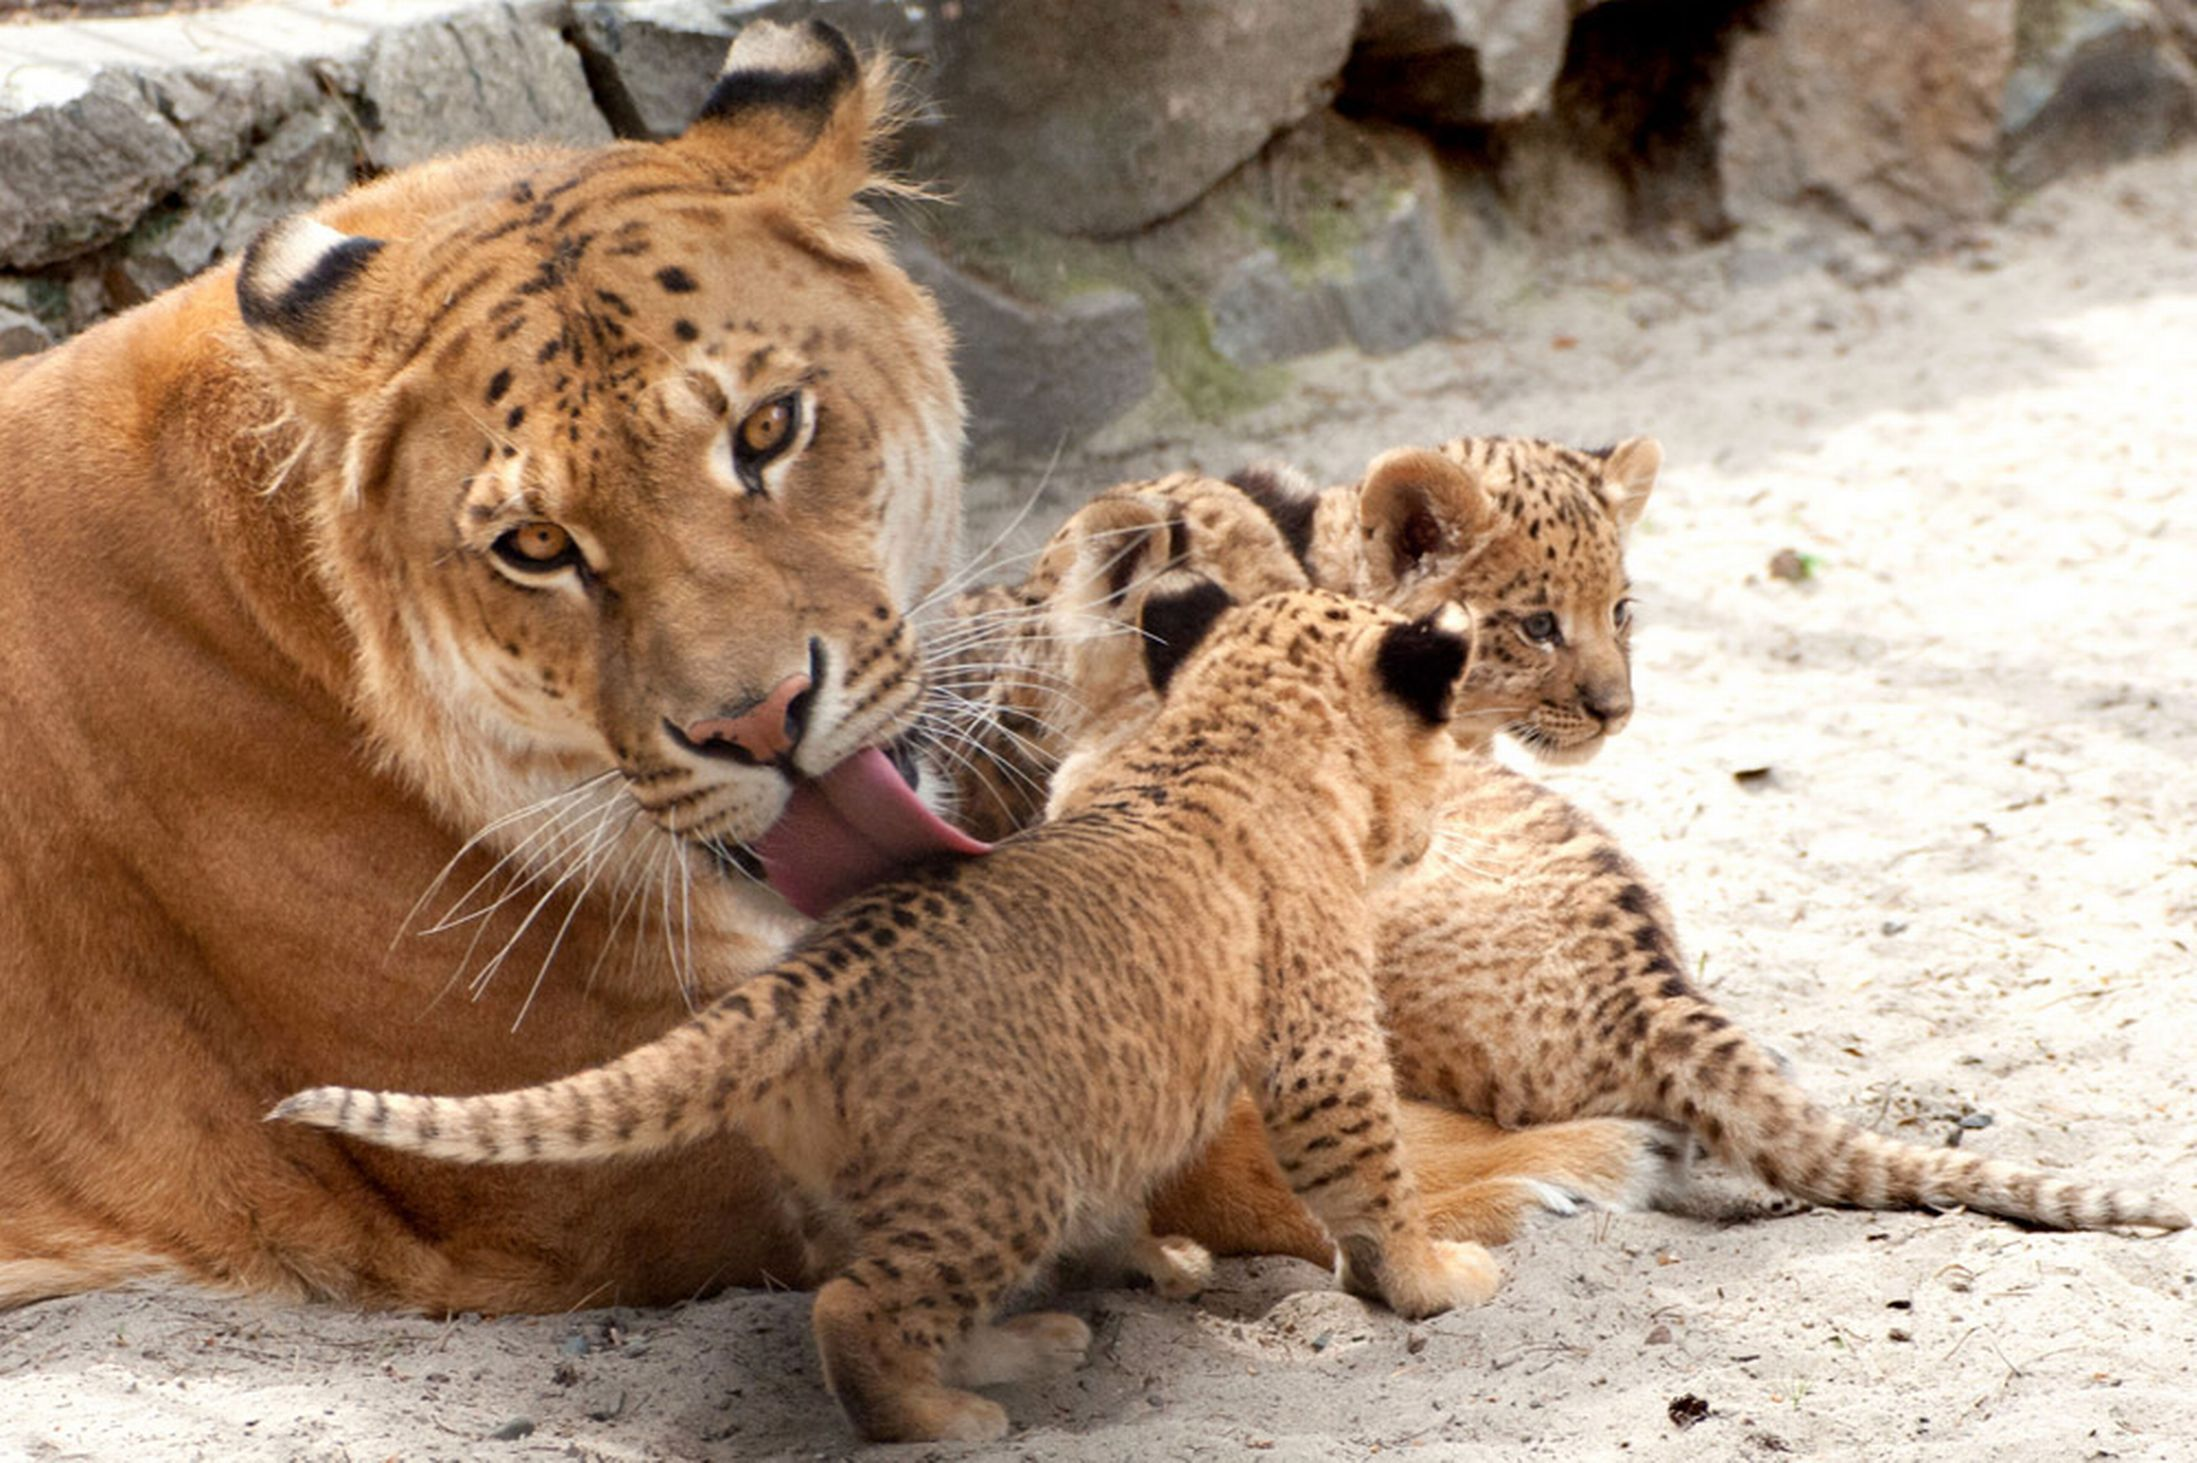 Rare liliger cubs mane attraction at a Russian zoo